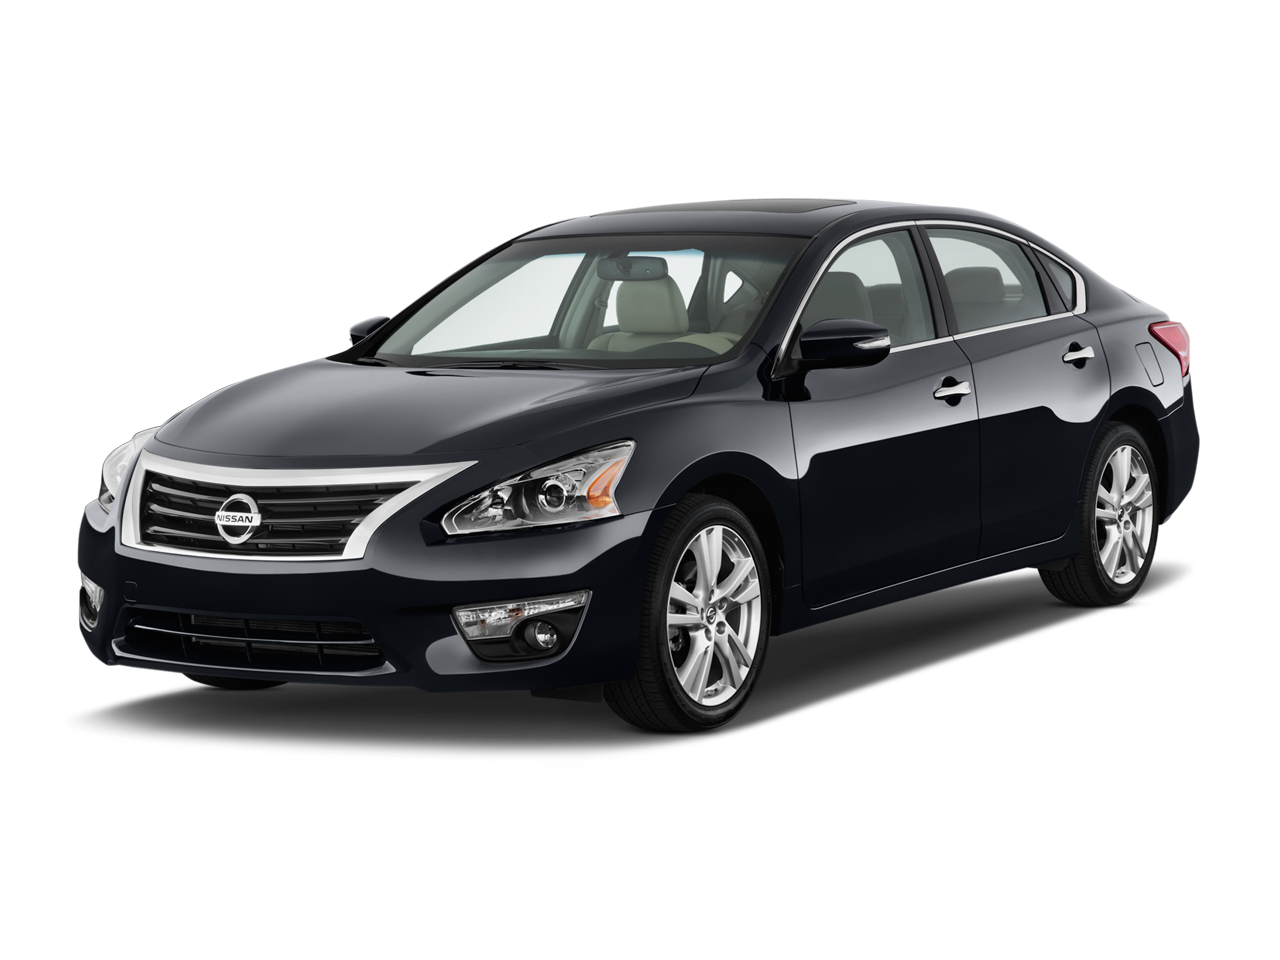 2014 nissan sentra black similar new nissan sentra murray image result for black nissan car vanachro Image collections